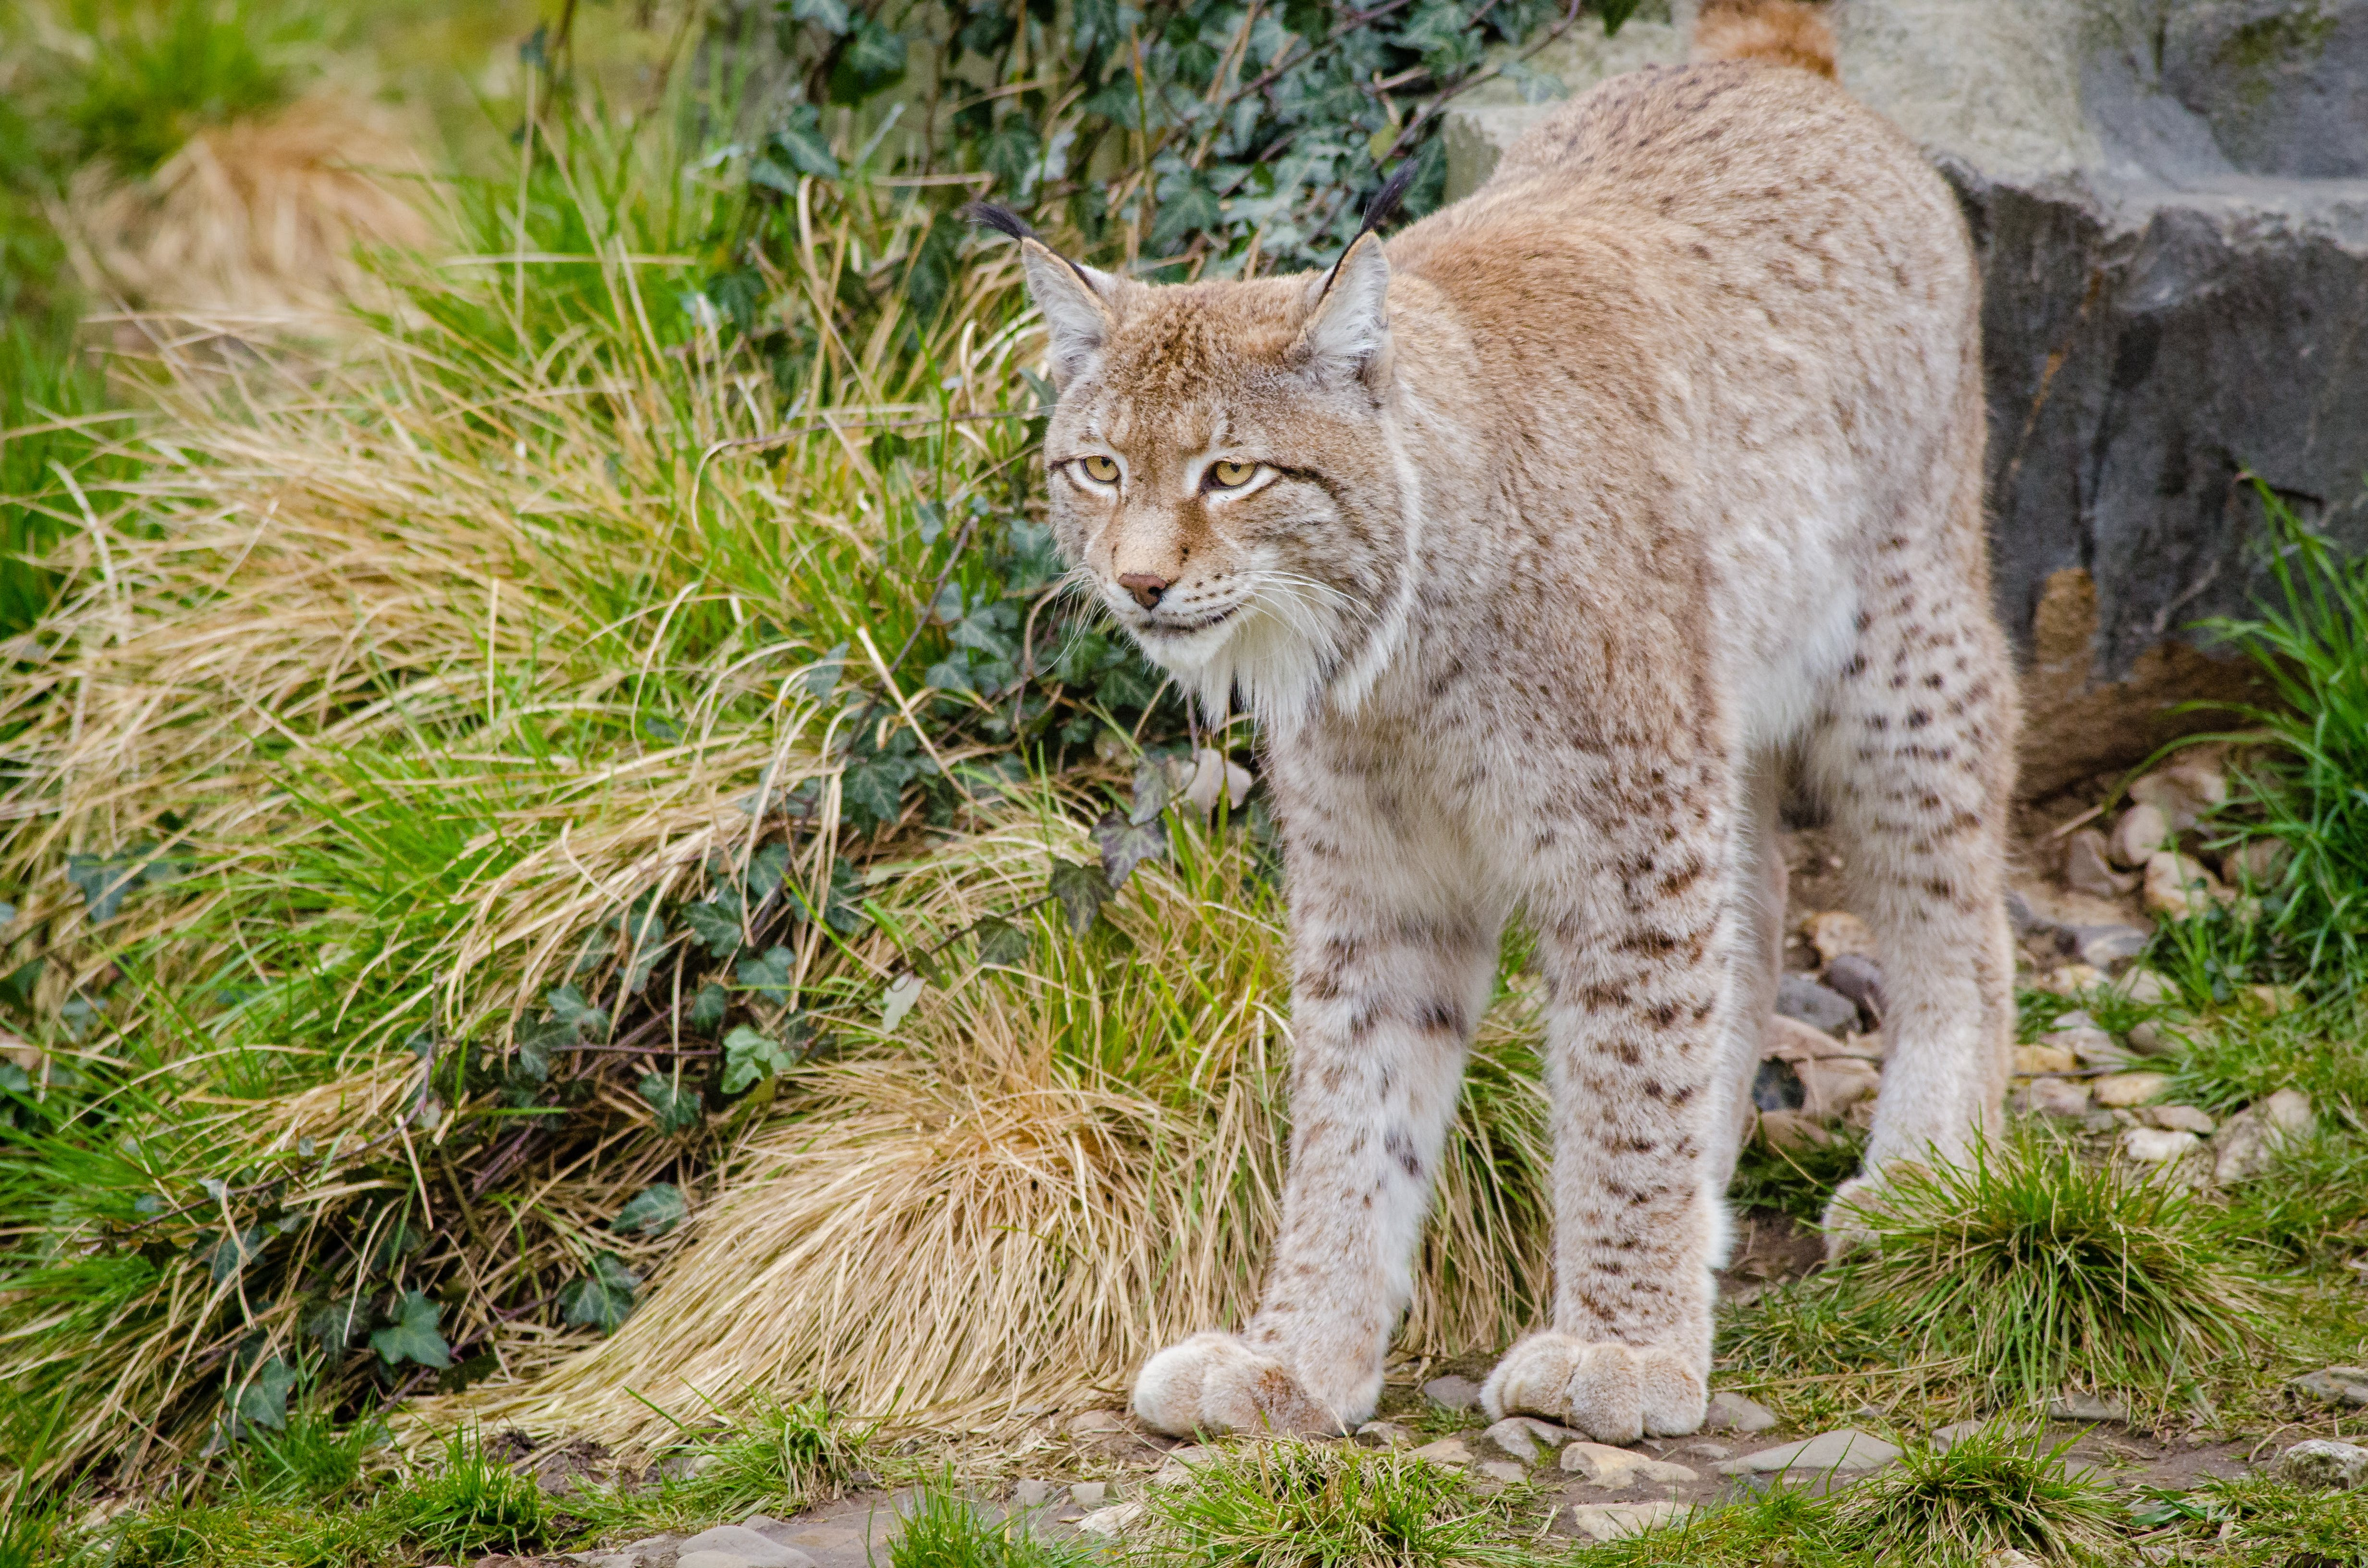 Lynx on Green Grass during Daytime